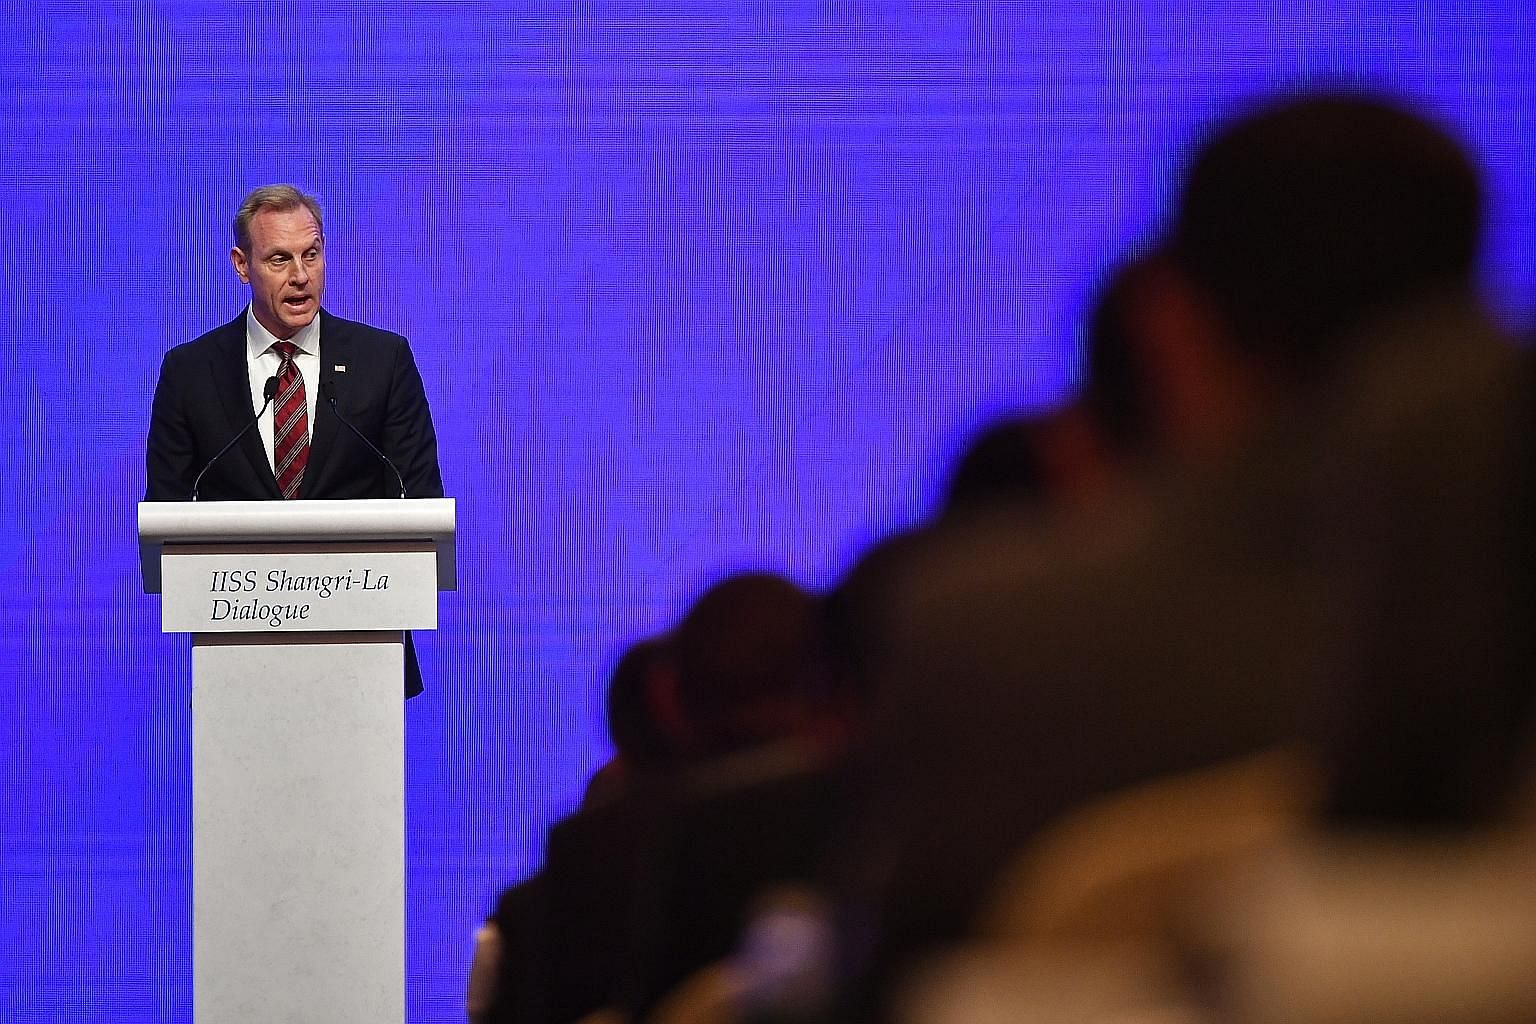 Acting US Defence Secretary Patrick Shanahan urged allies and partners to invest in their own defence to strengthen deterrence and uphold a rules-based international order to maintain a level playing field.